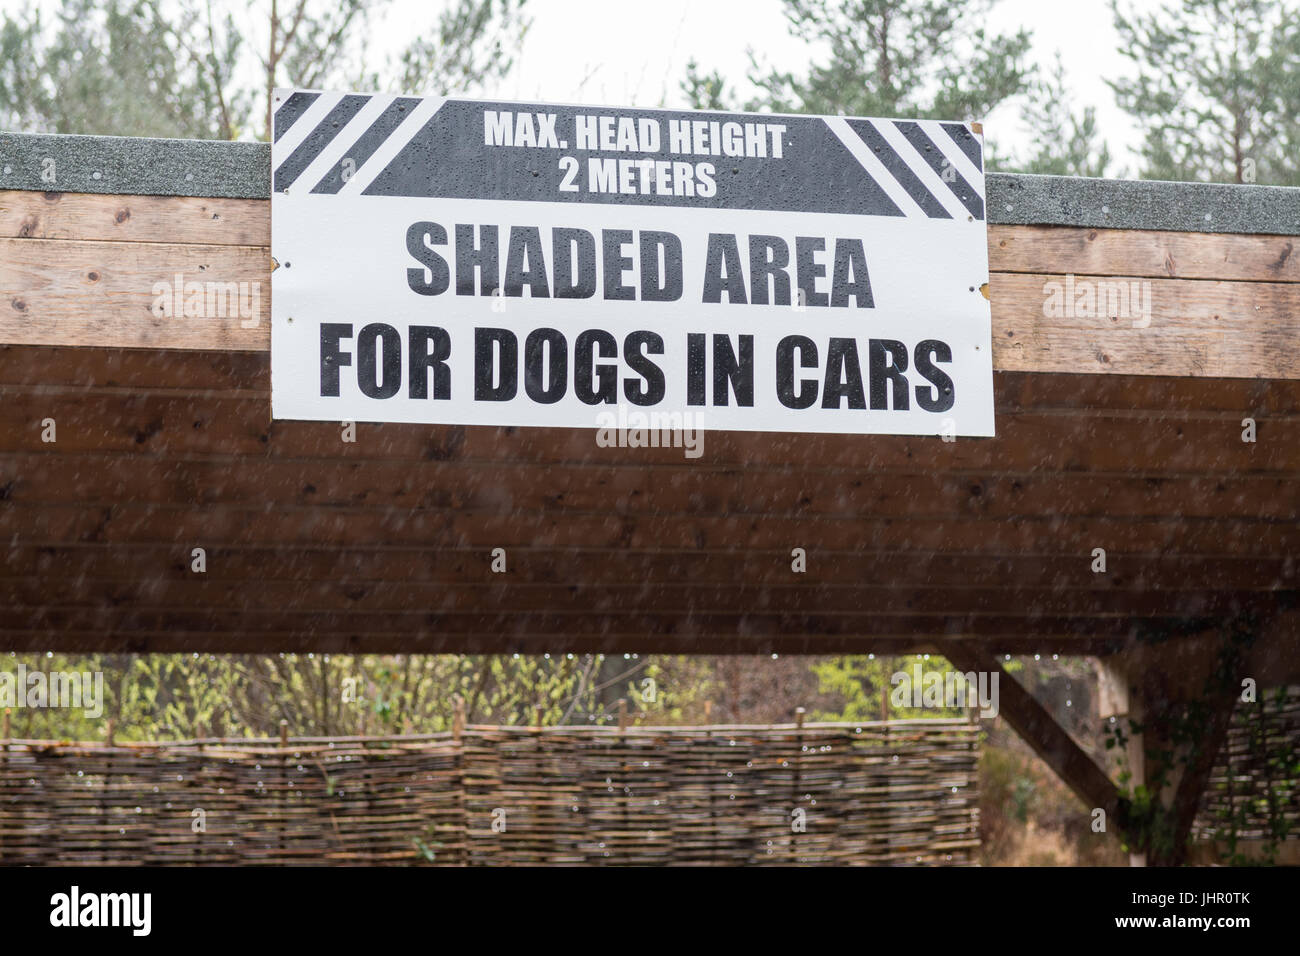 Shaded area for dogs in cars at Beinn Eighe NNR visitor centre, Kinlochewe, Scotland, UK - Stock Image